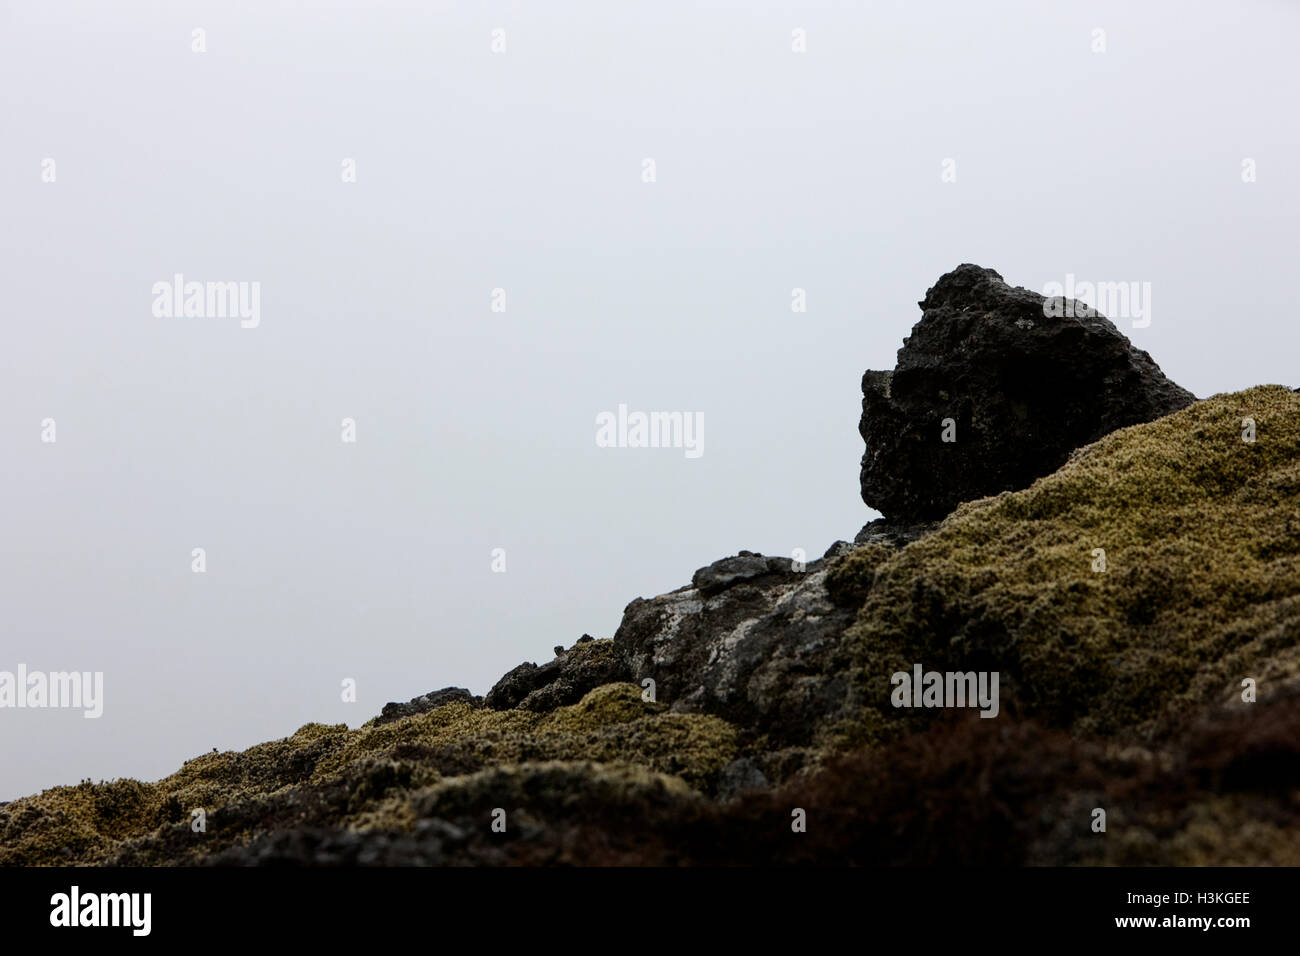 troll face in the volcanic lava field rocks Iceland - Stock Image